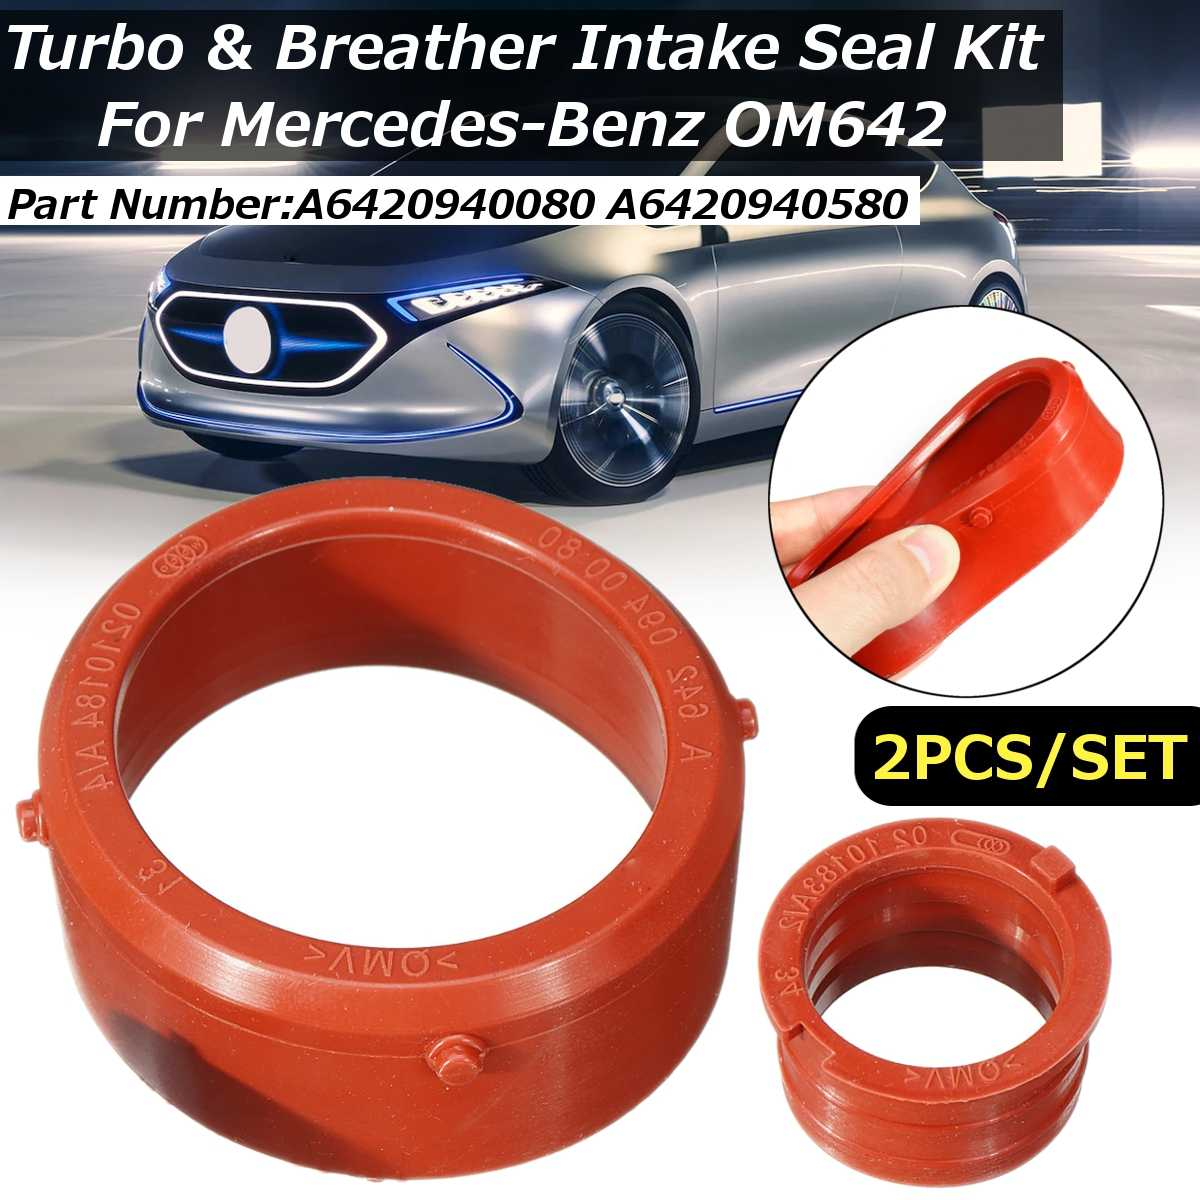 2pcs  Car engine A6420940080 Turbo Intake Seal  amp  Engine Breather Seal Kit for Mercedes-Benz OM642 Engines Engine Accessories